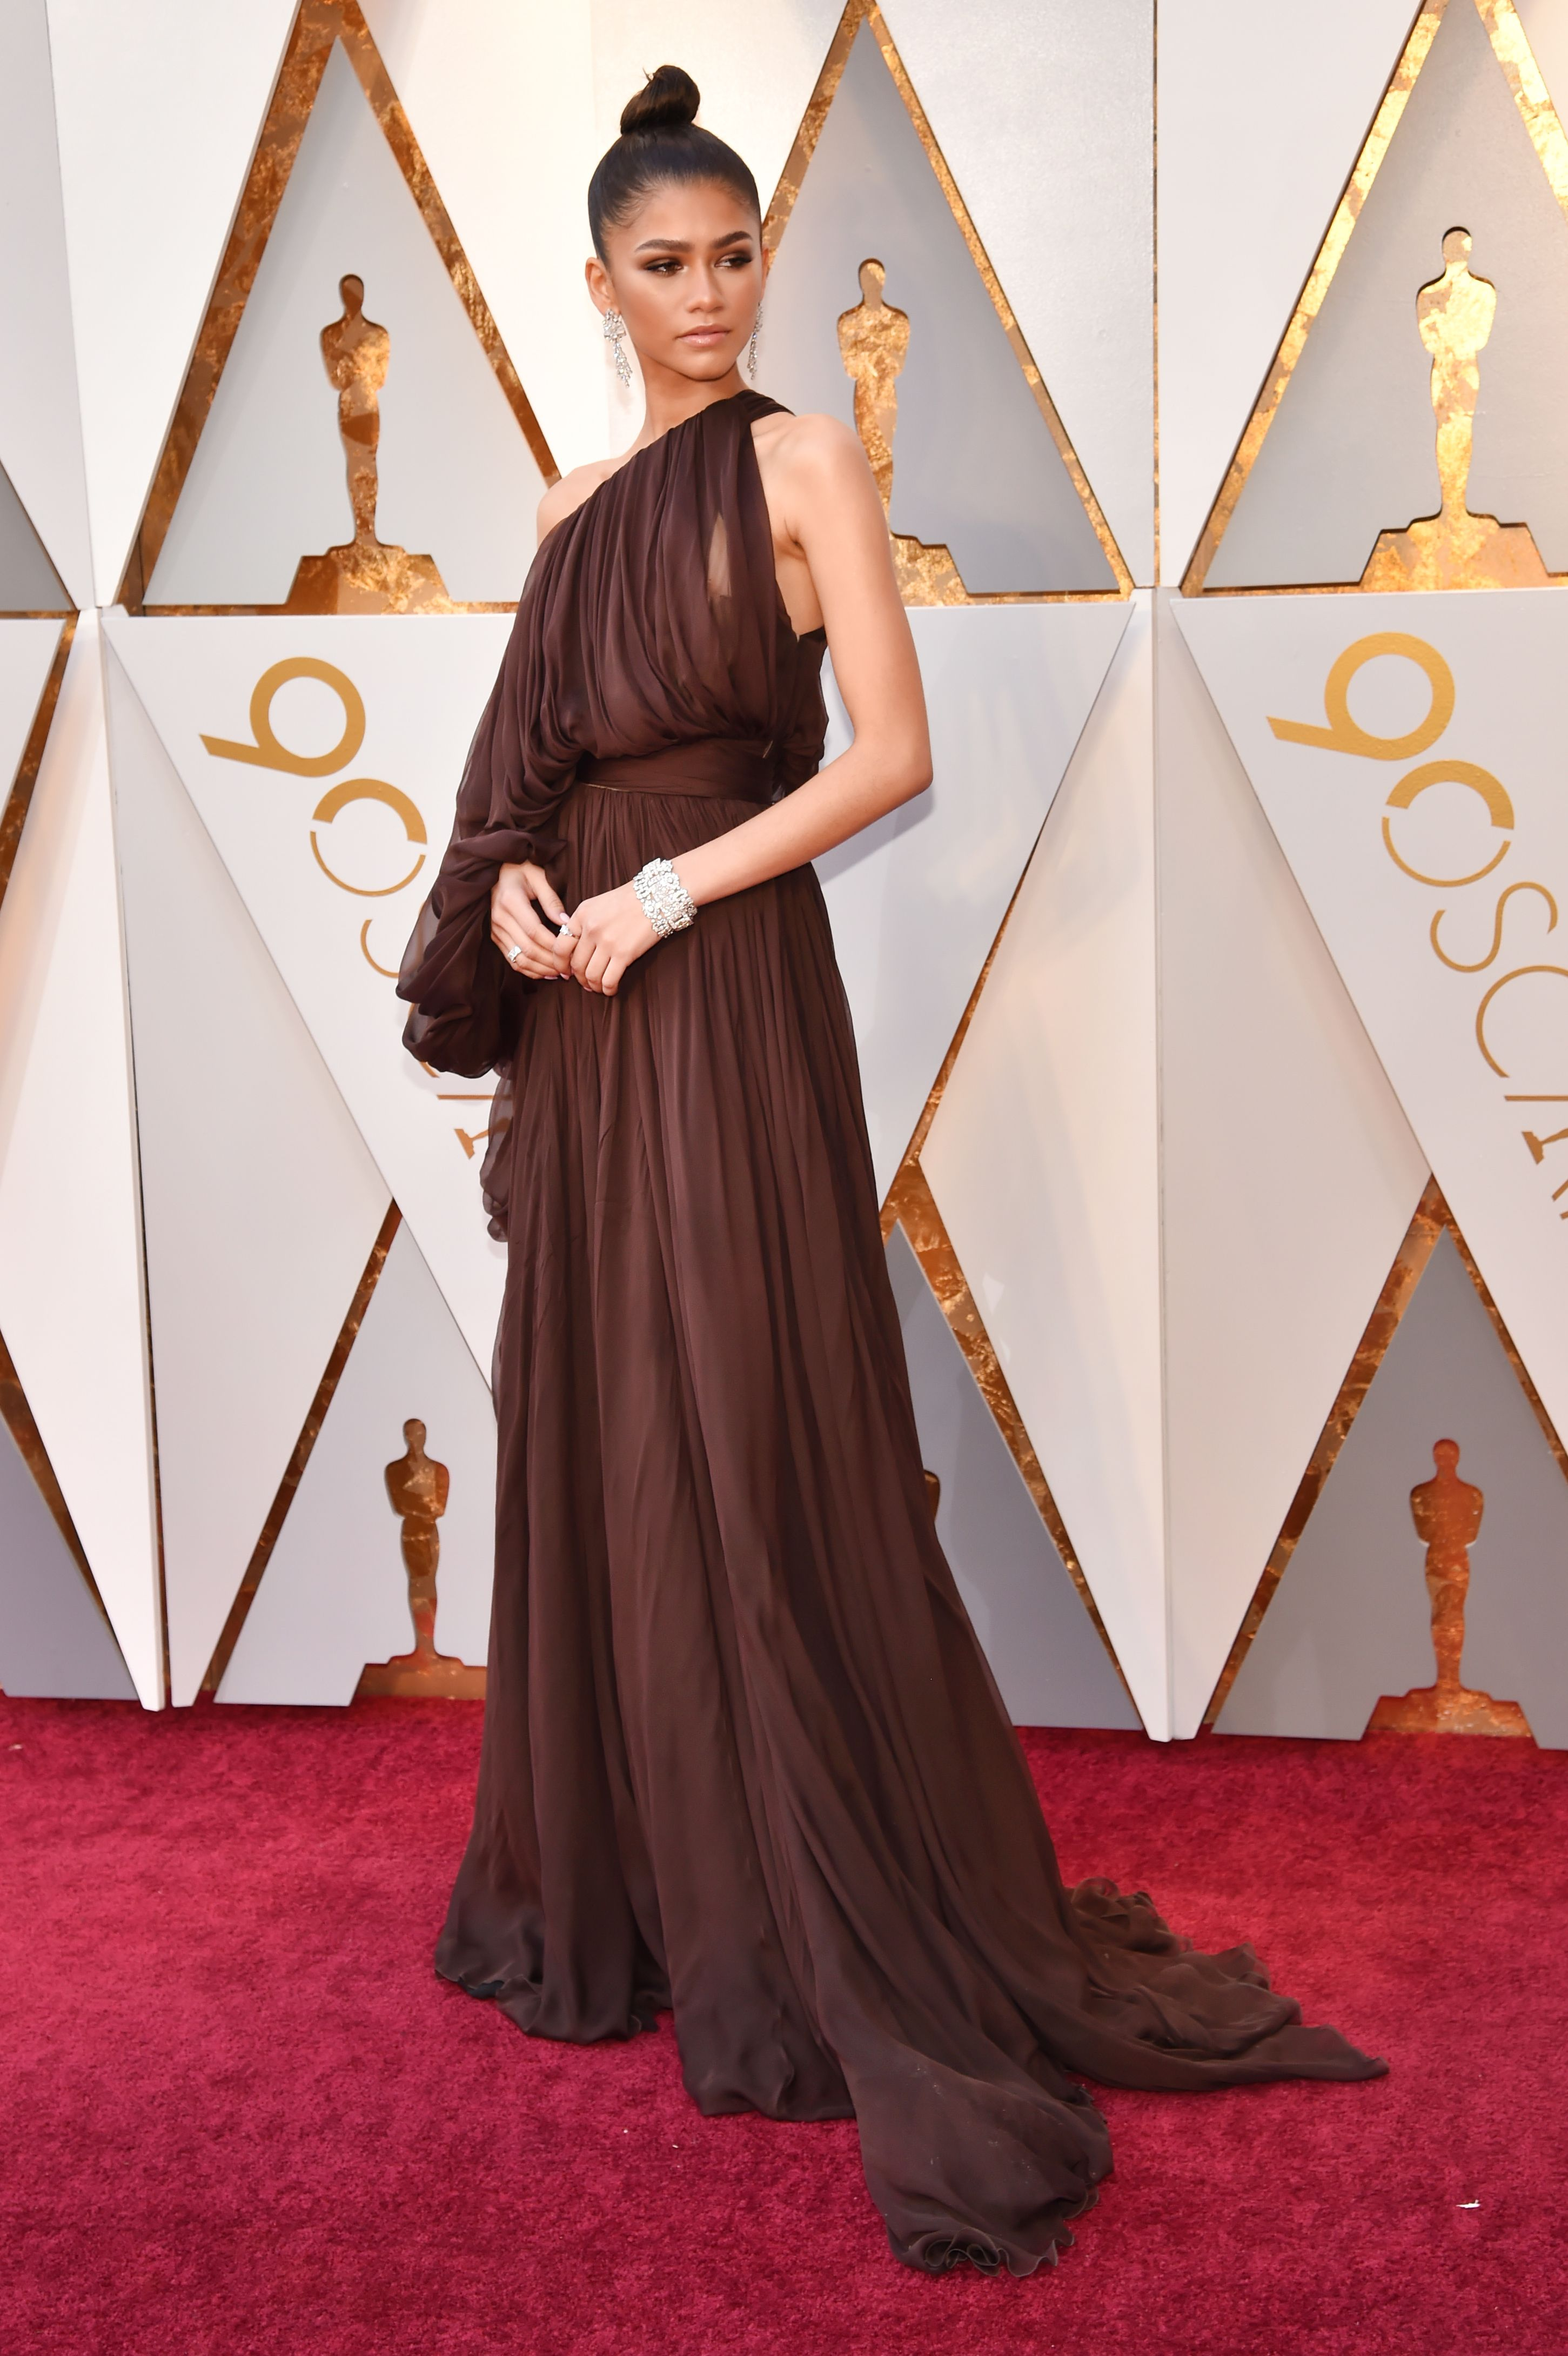 82823ea4c9f The Best-Dressed Celebrities from the 2018 Oscars Red Carpet